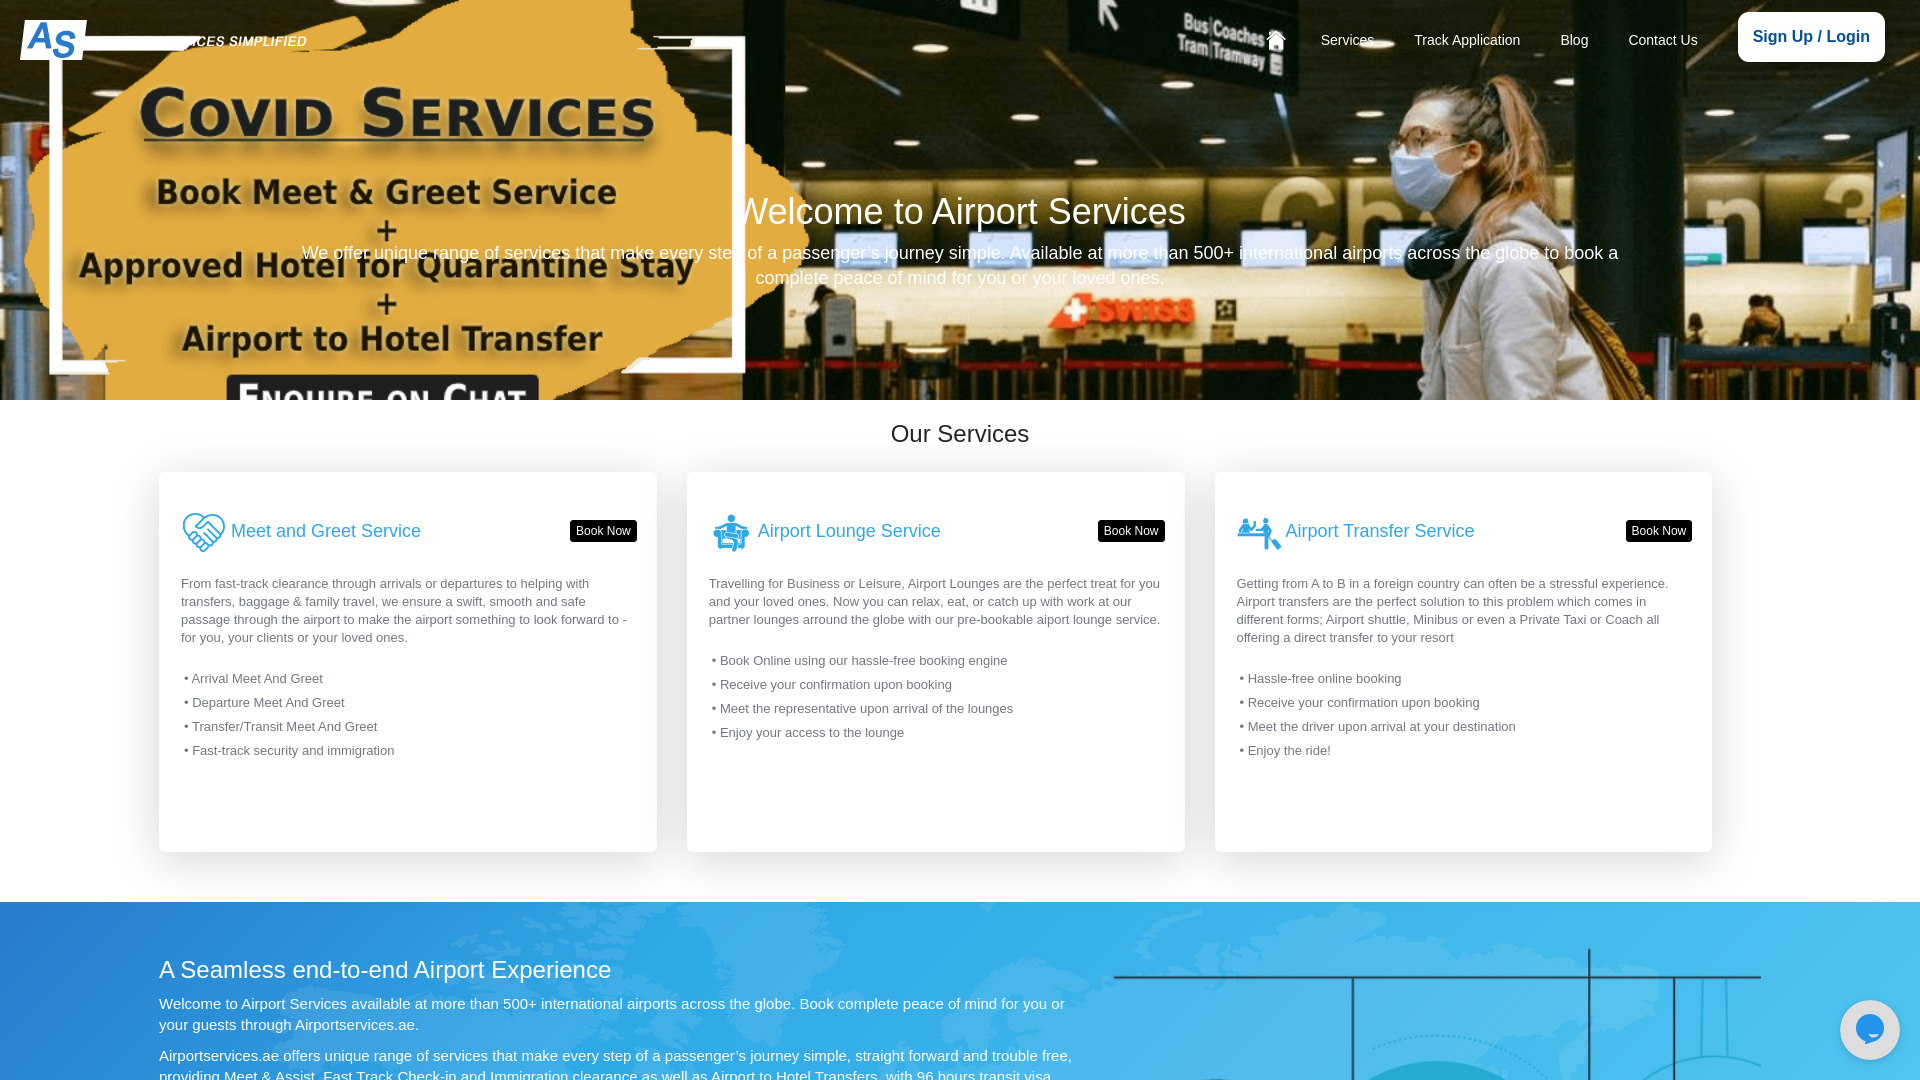 AirportServices WW website